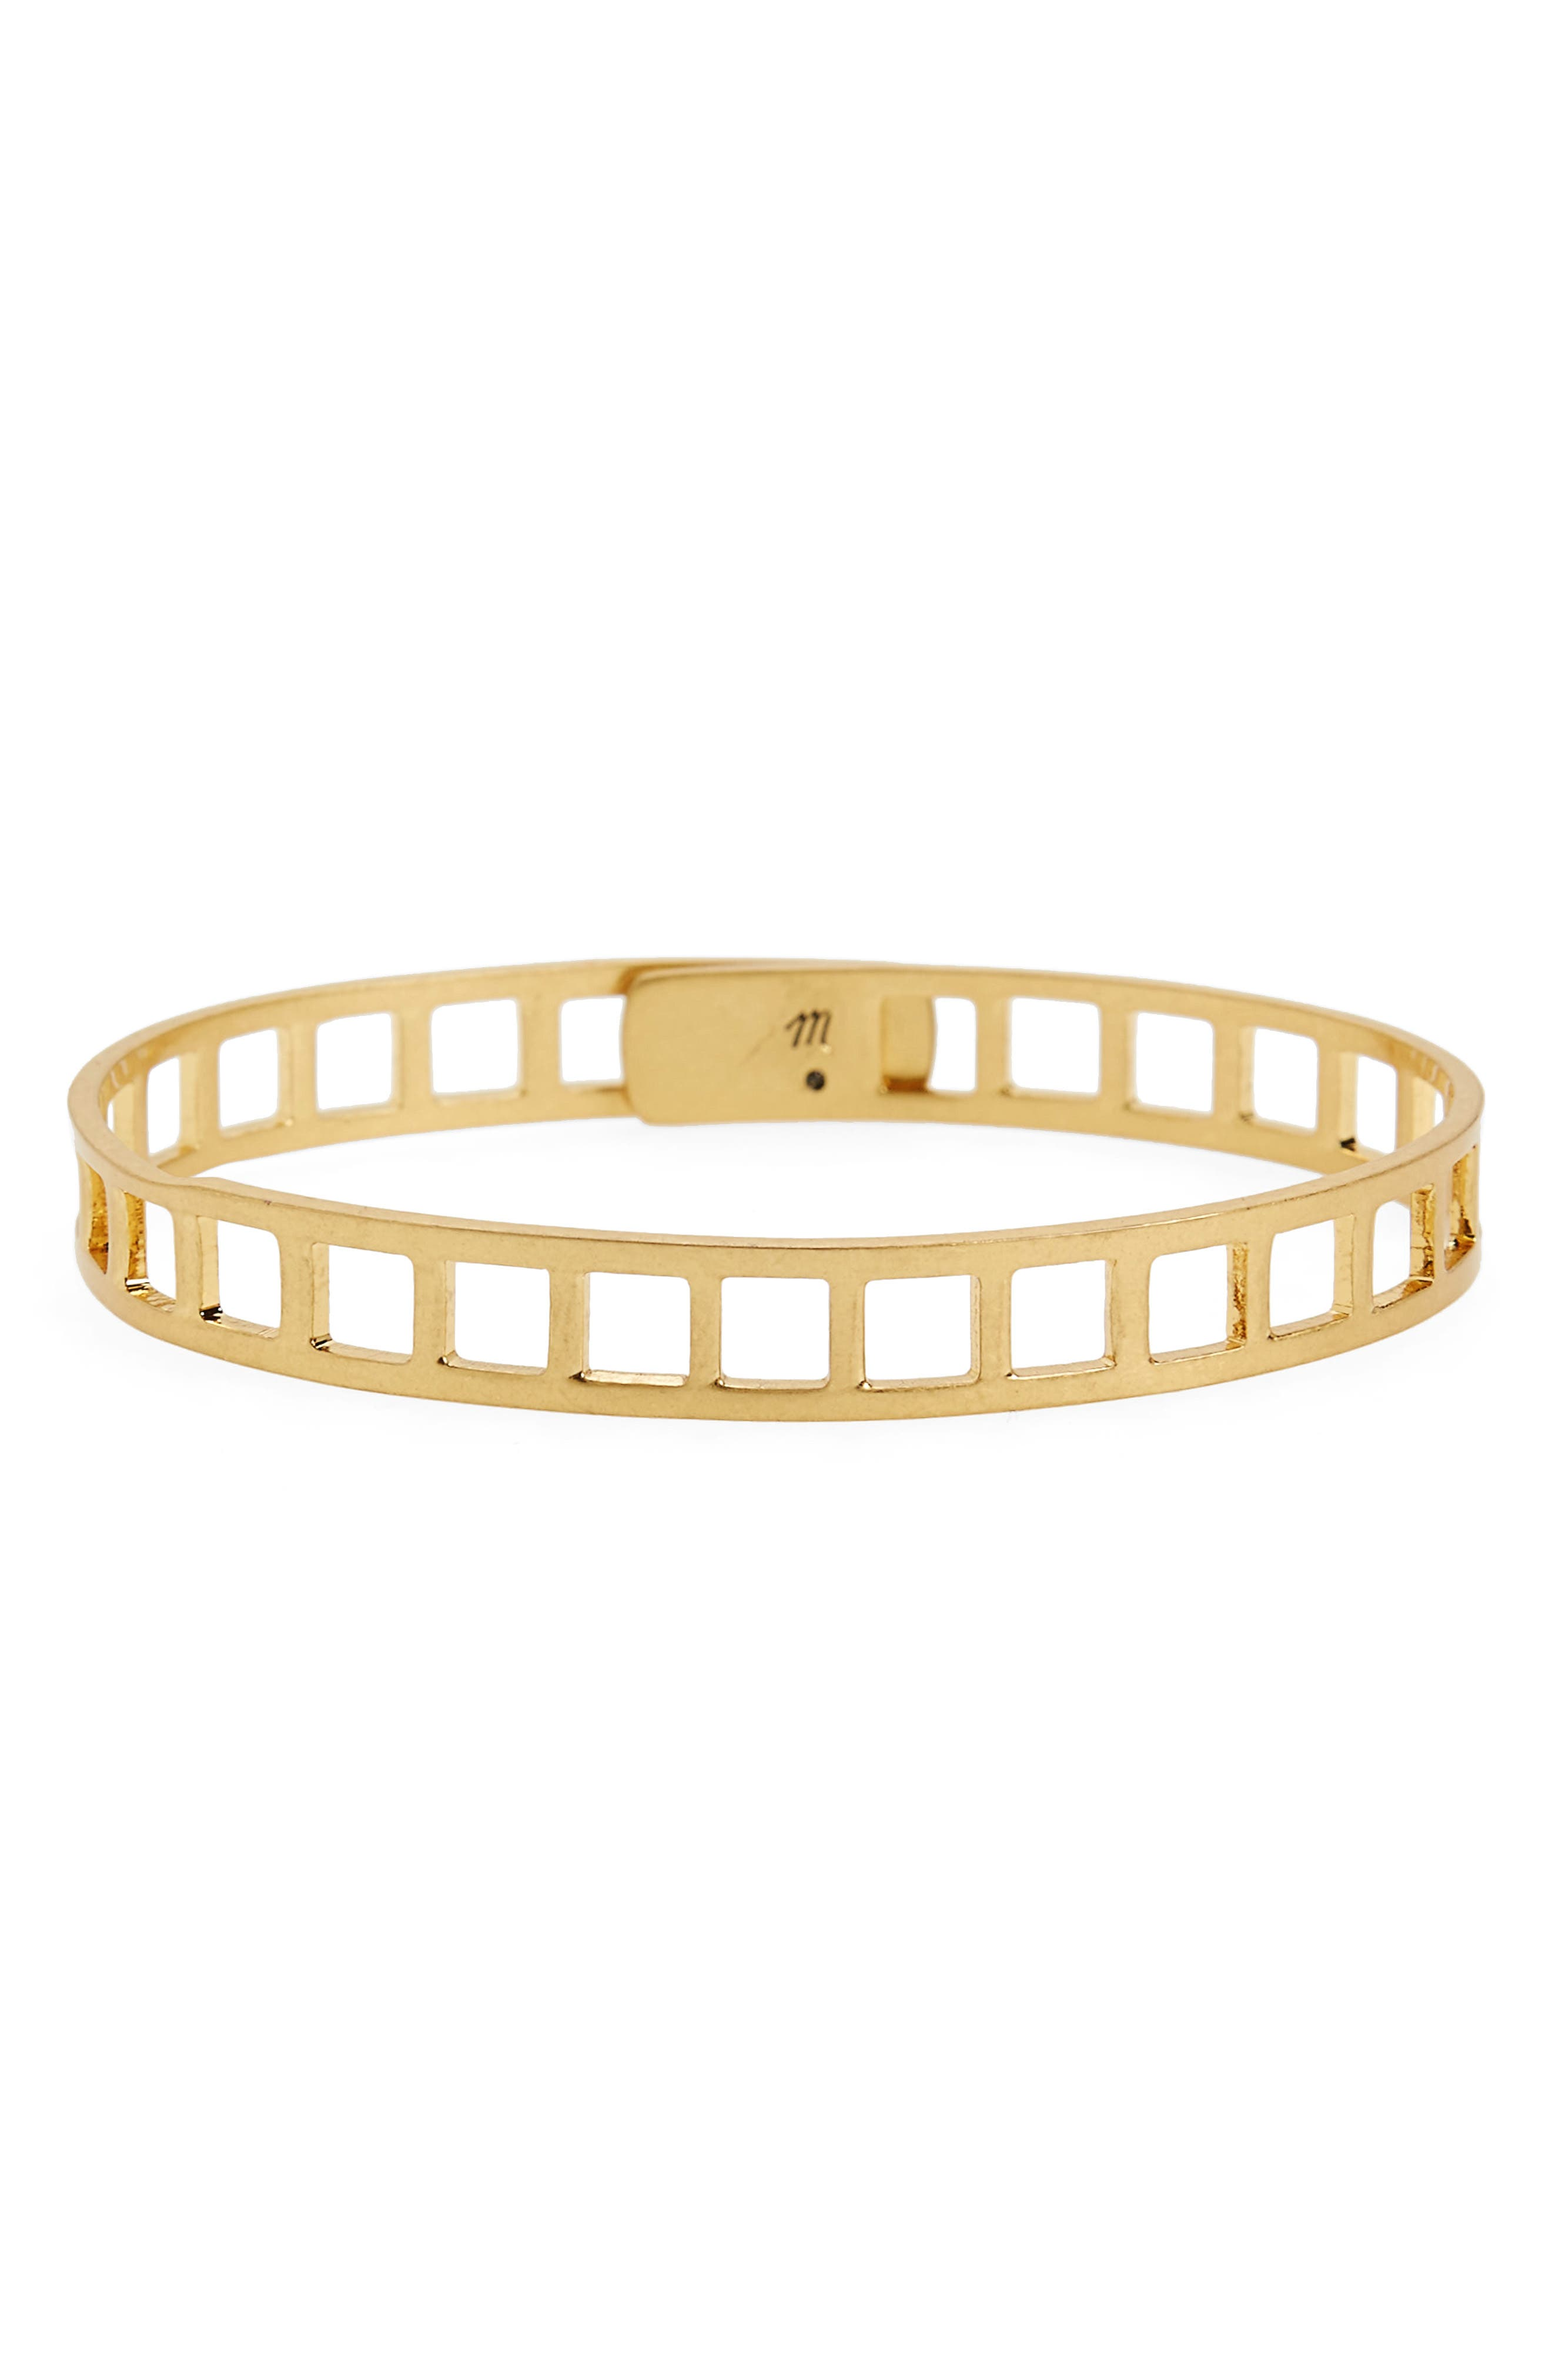 Tracecraft Bangle,                             Main thumbnail 1, color,                             Ladder Cut Out